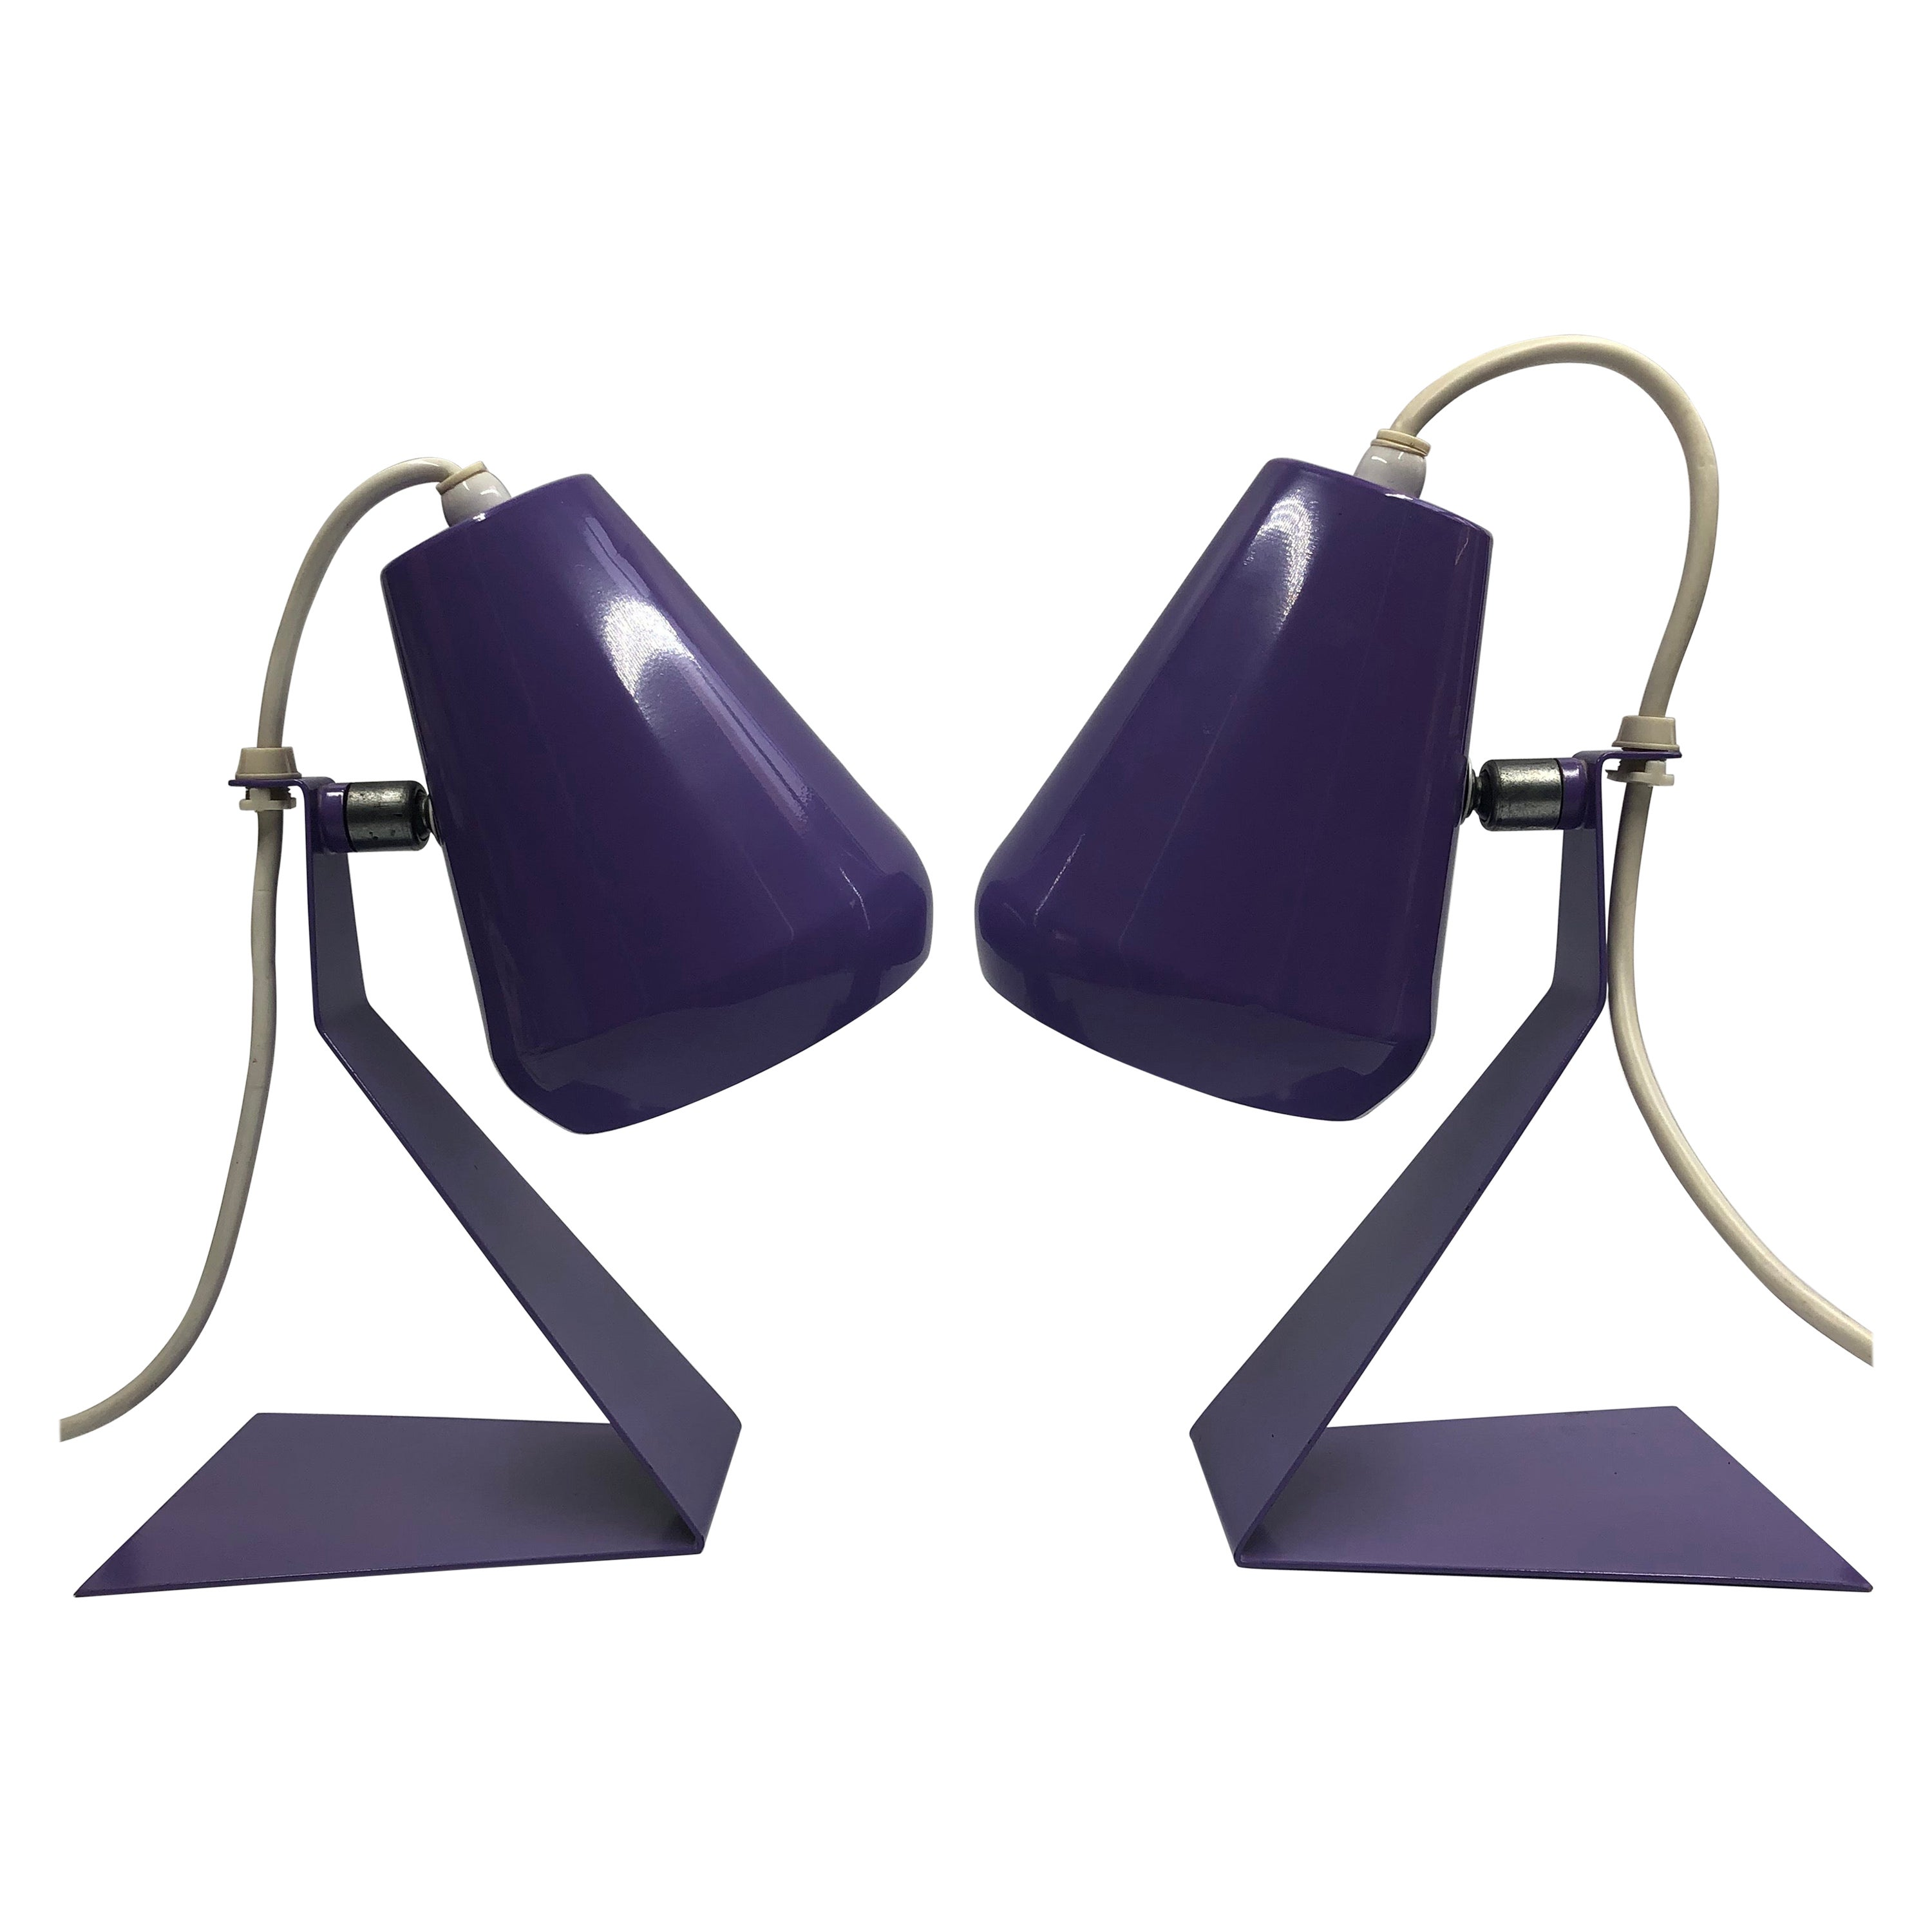 Set of 2 Midcentury Z Bedside Table Lamps, 1960s Adjustable Lamp Shade